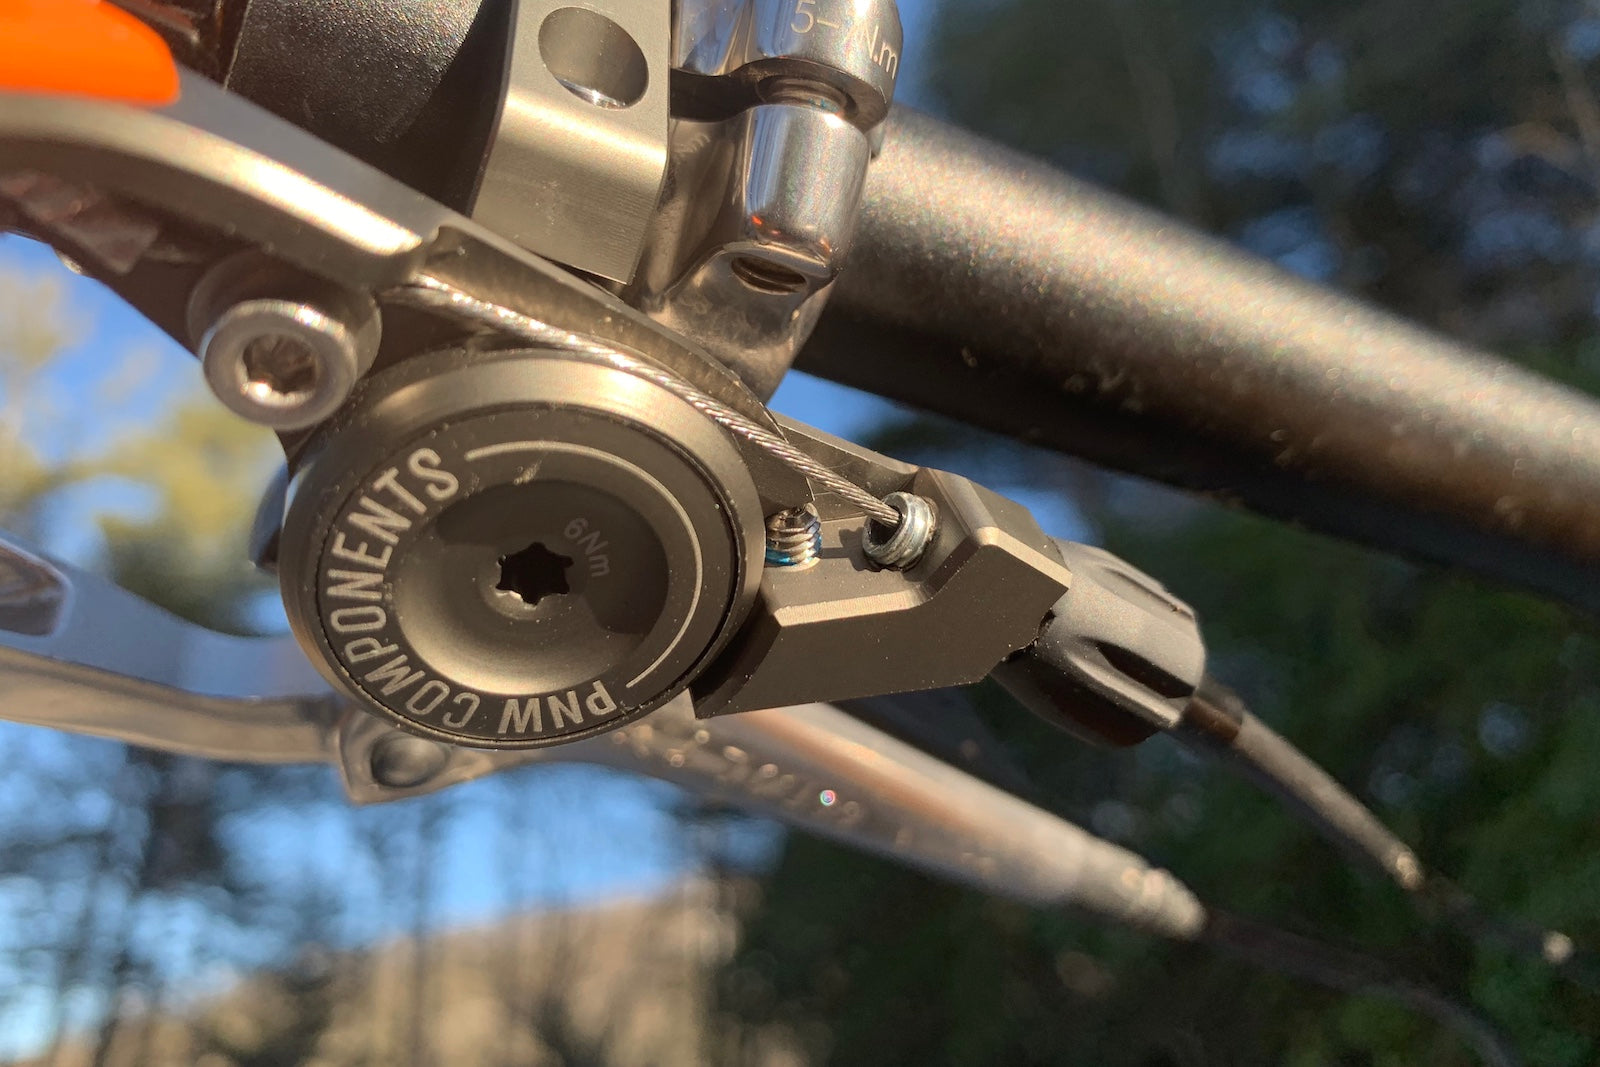 PNW Loam Lever - Worldwide Cyclery